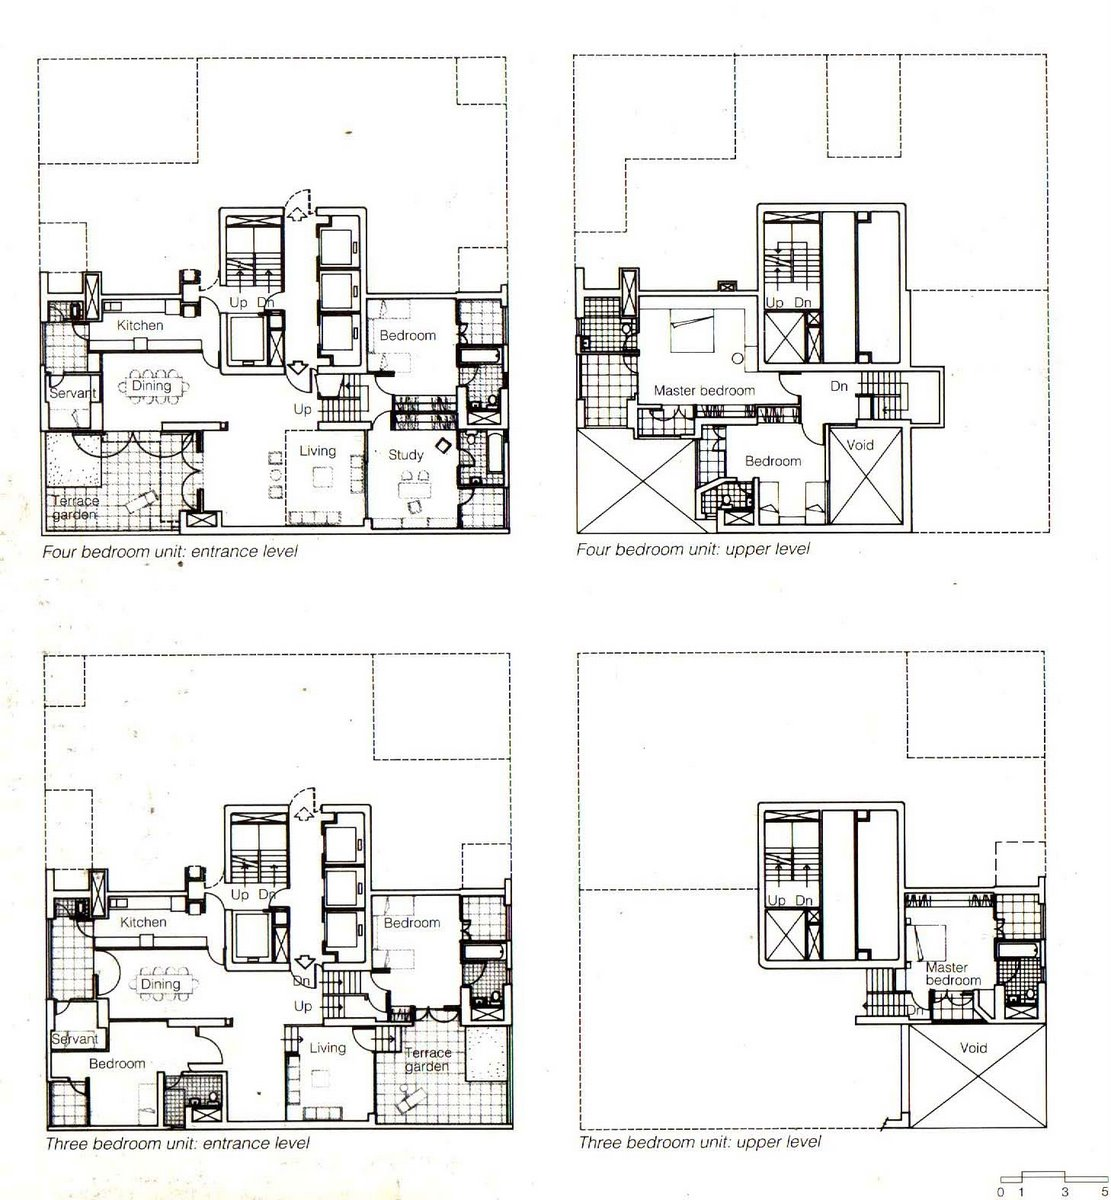 24 Unit Apartment Building Plans 24 Unit Apartment Building Plans Http Planet Ltc Org